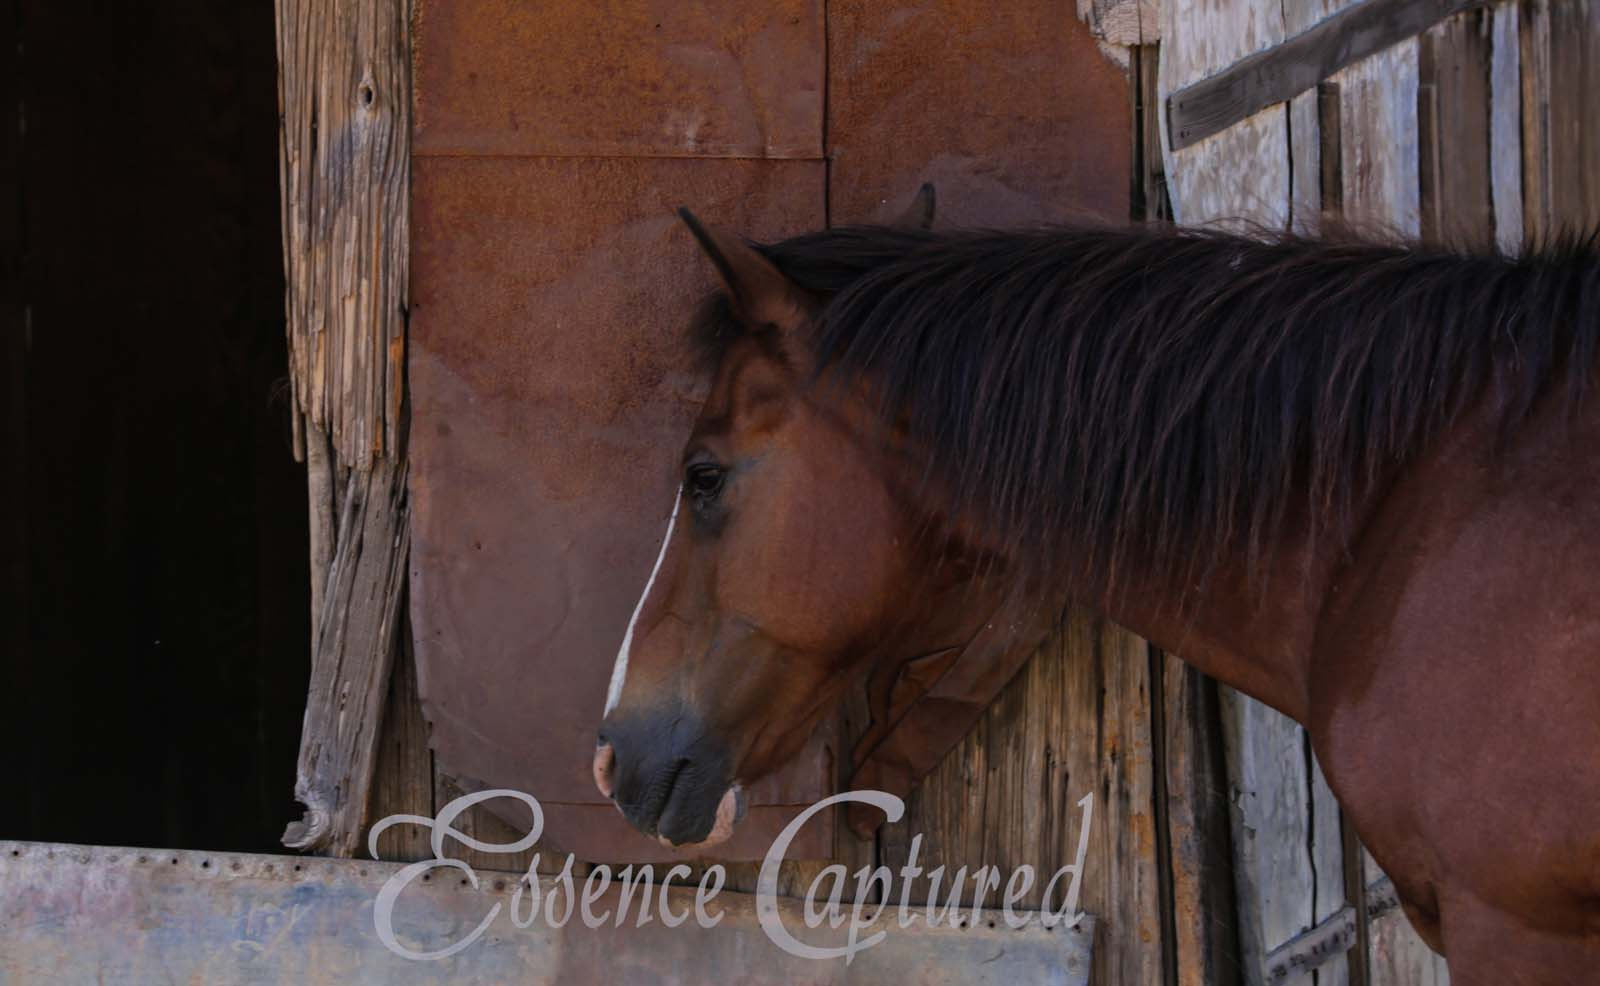 brown horse head and neck with old shed background